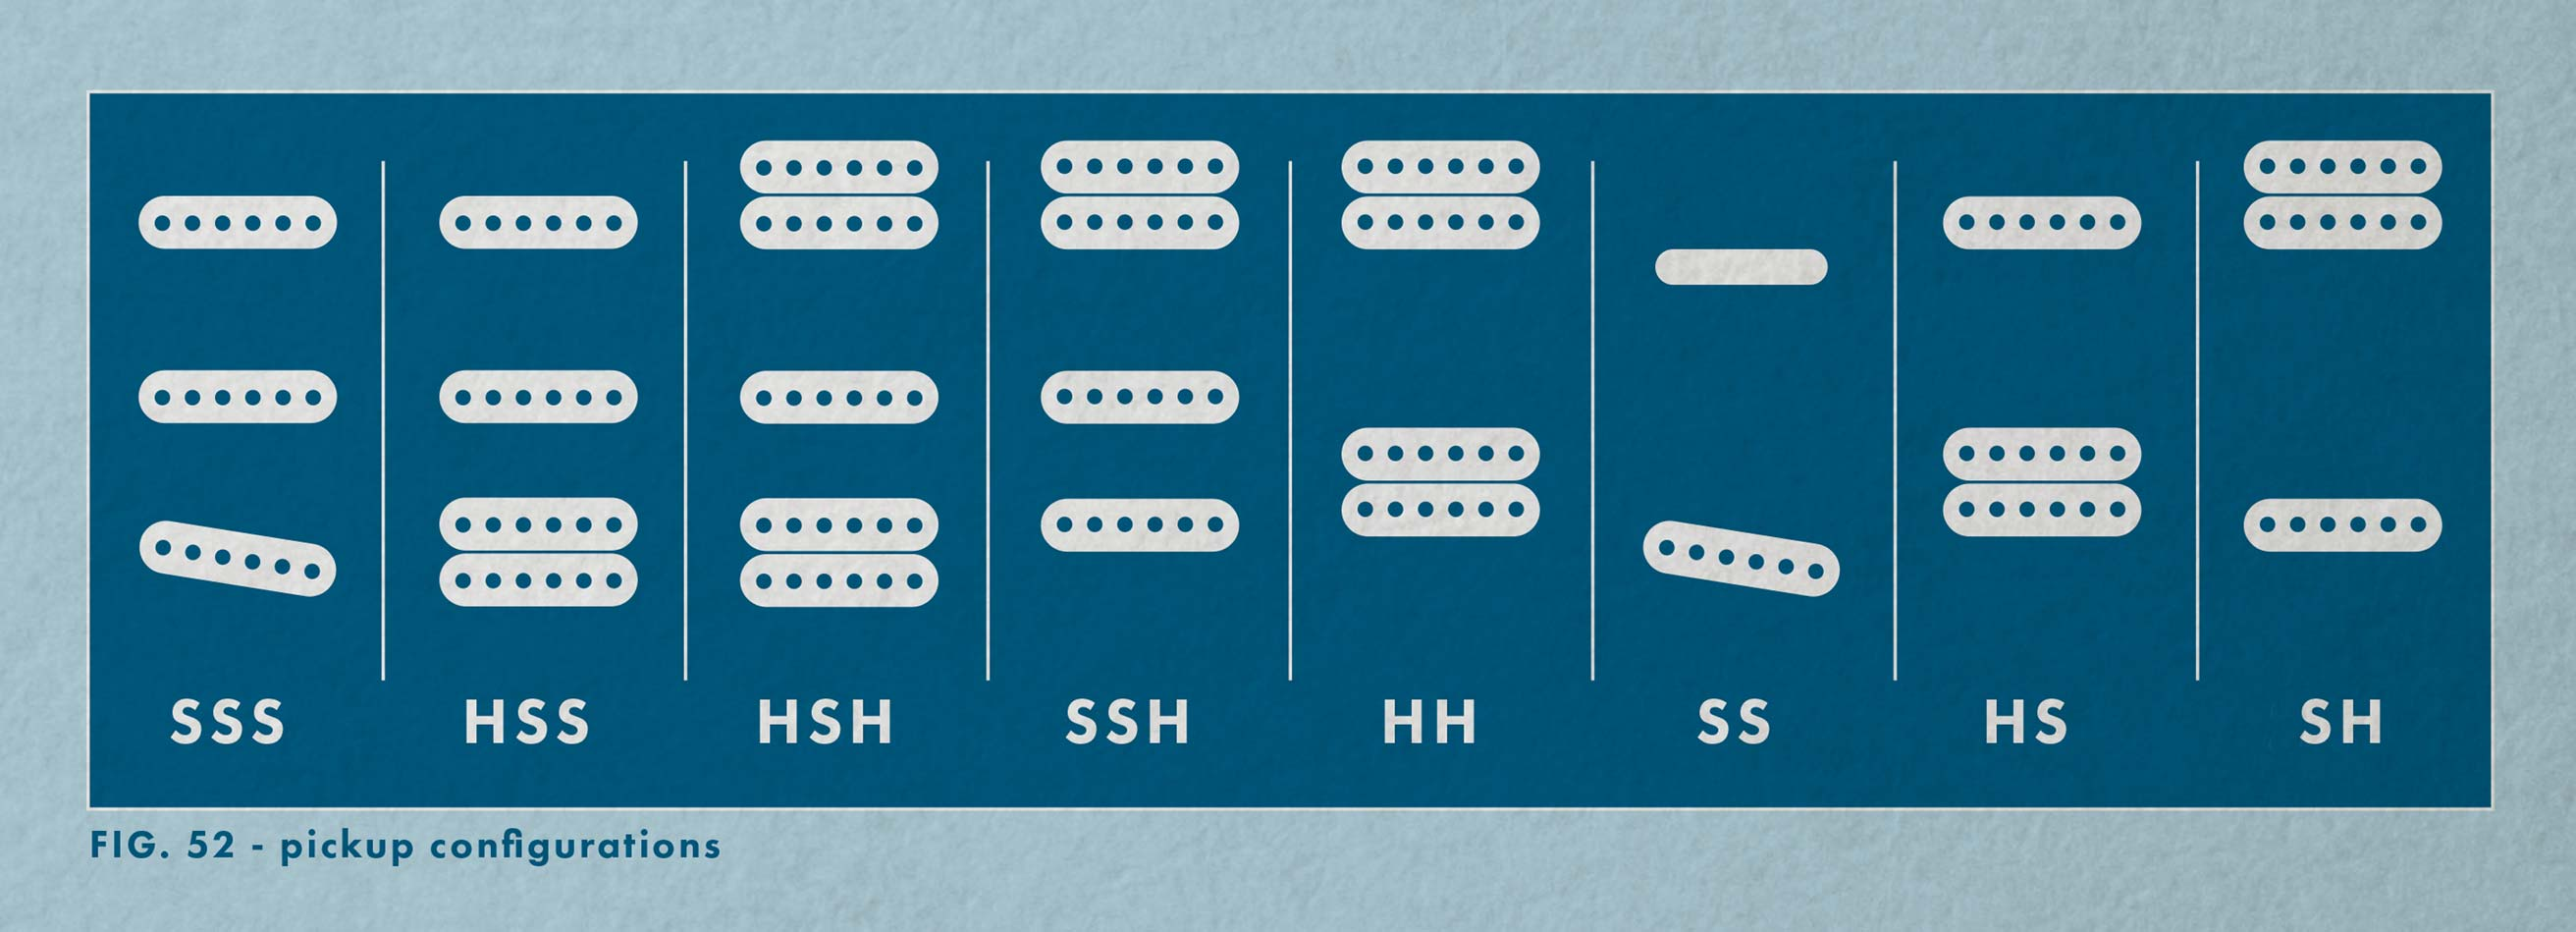 Decoding Standard Pickup Arrangements